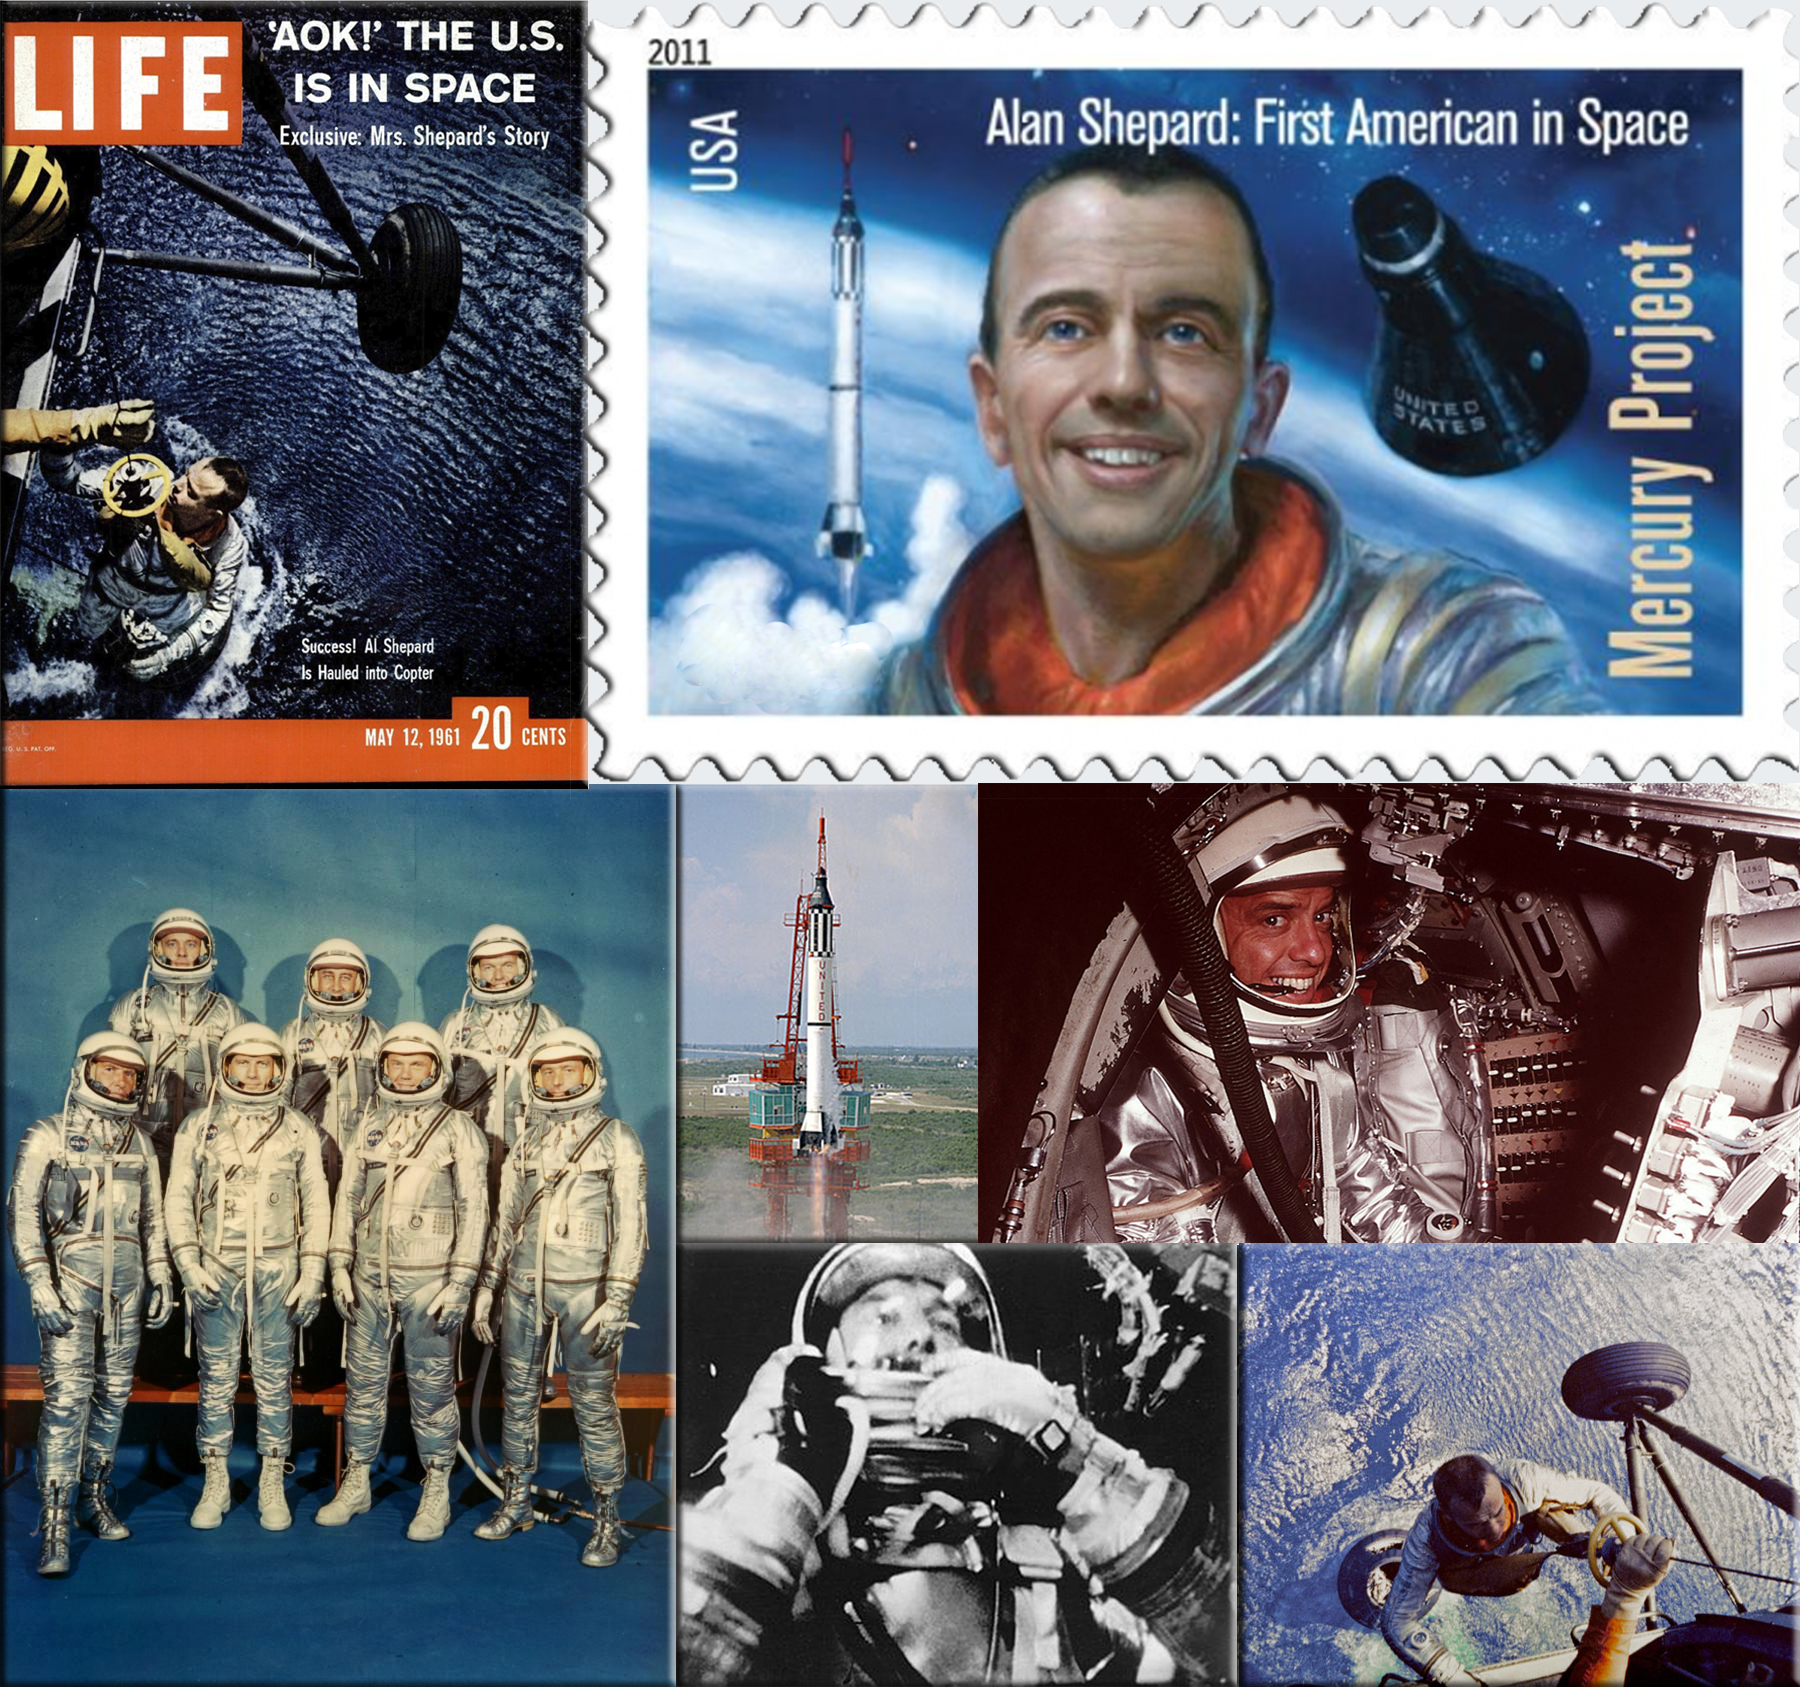 american space program 1961 gallery - photo #6